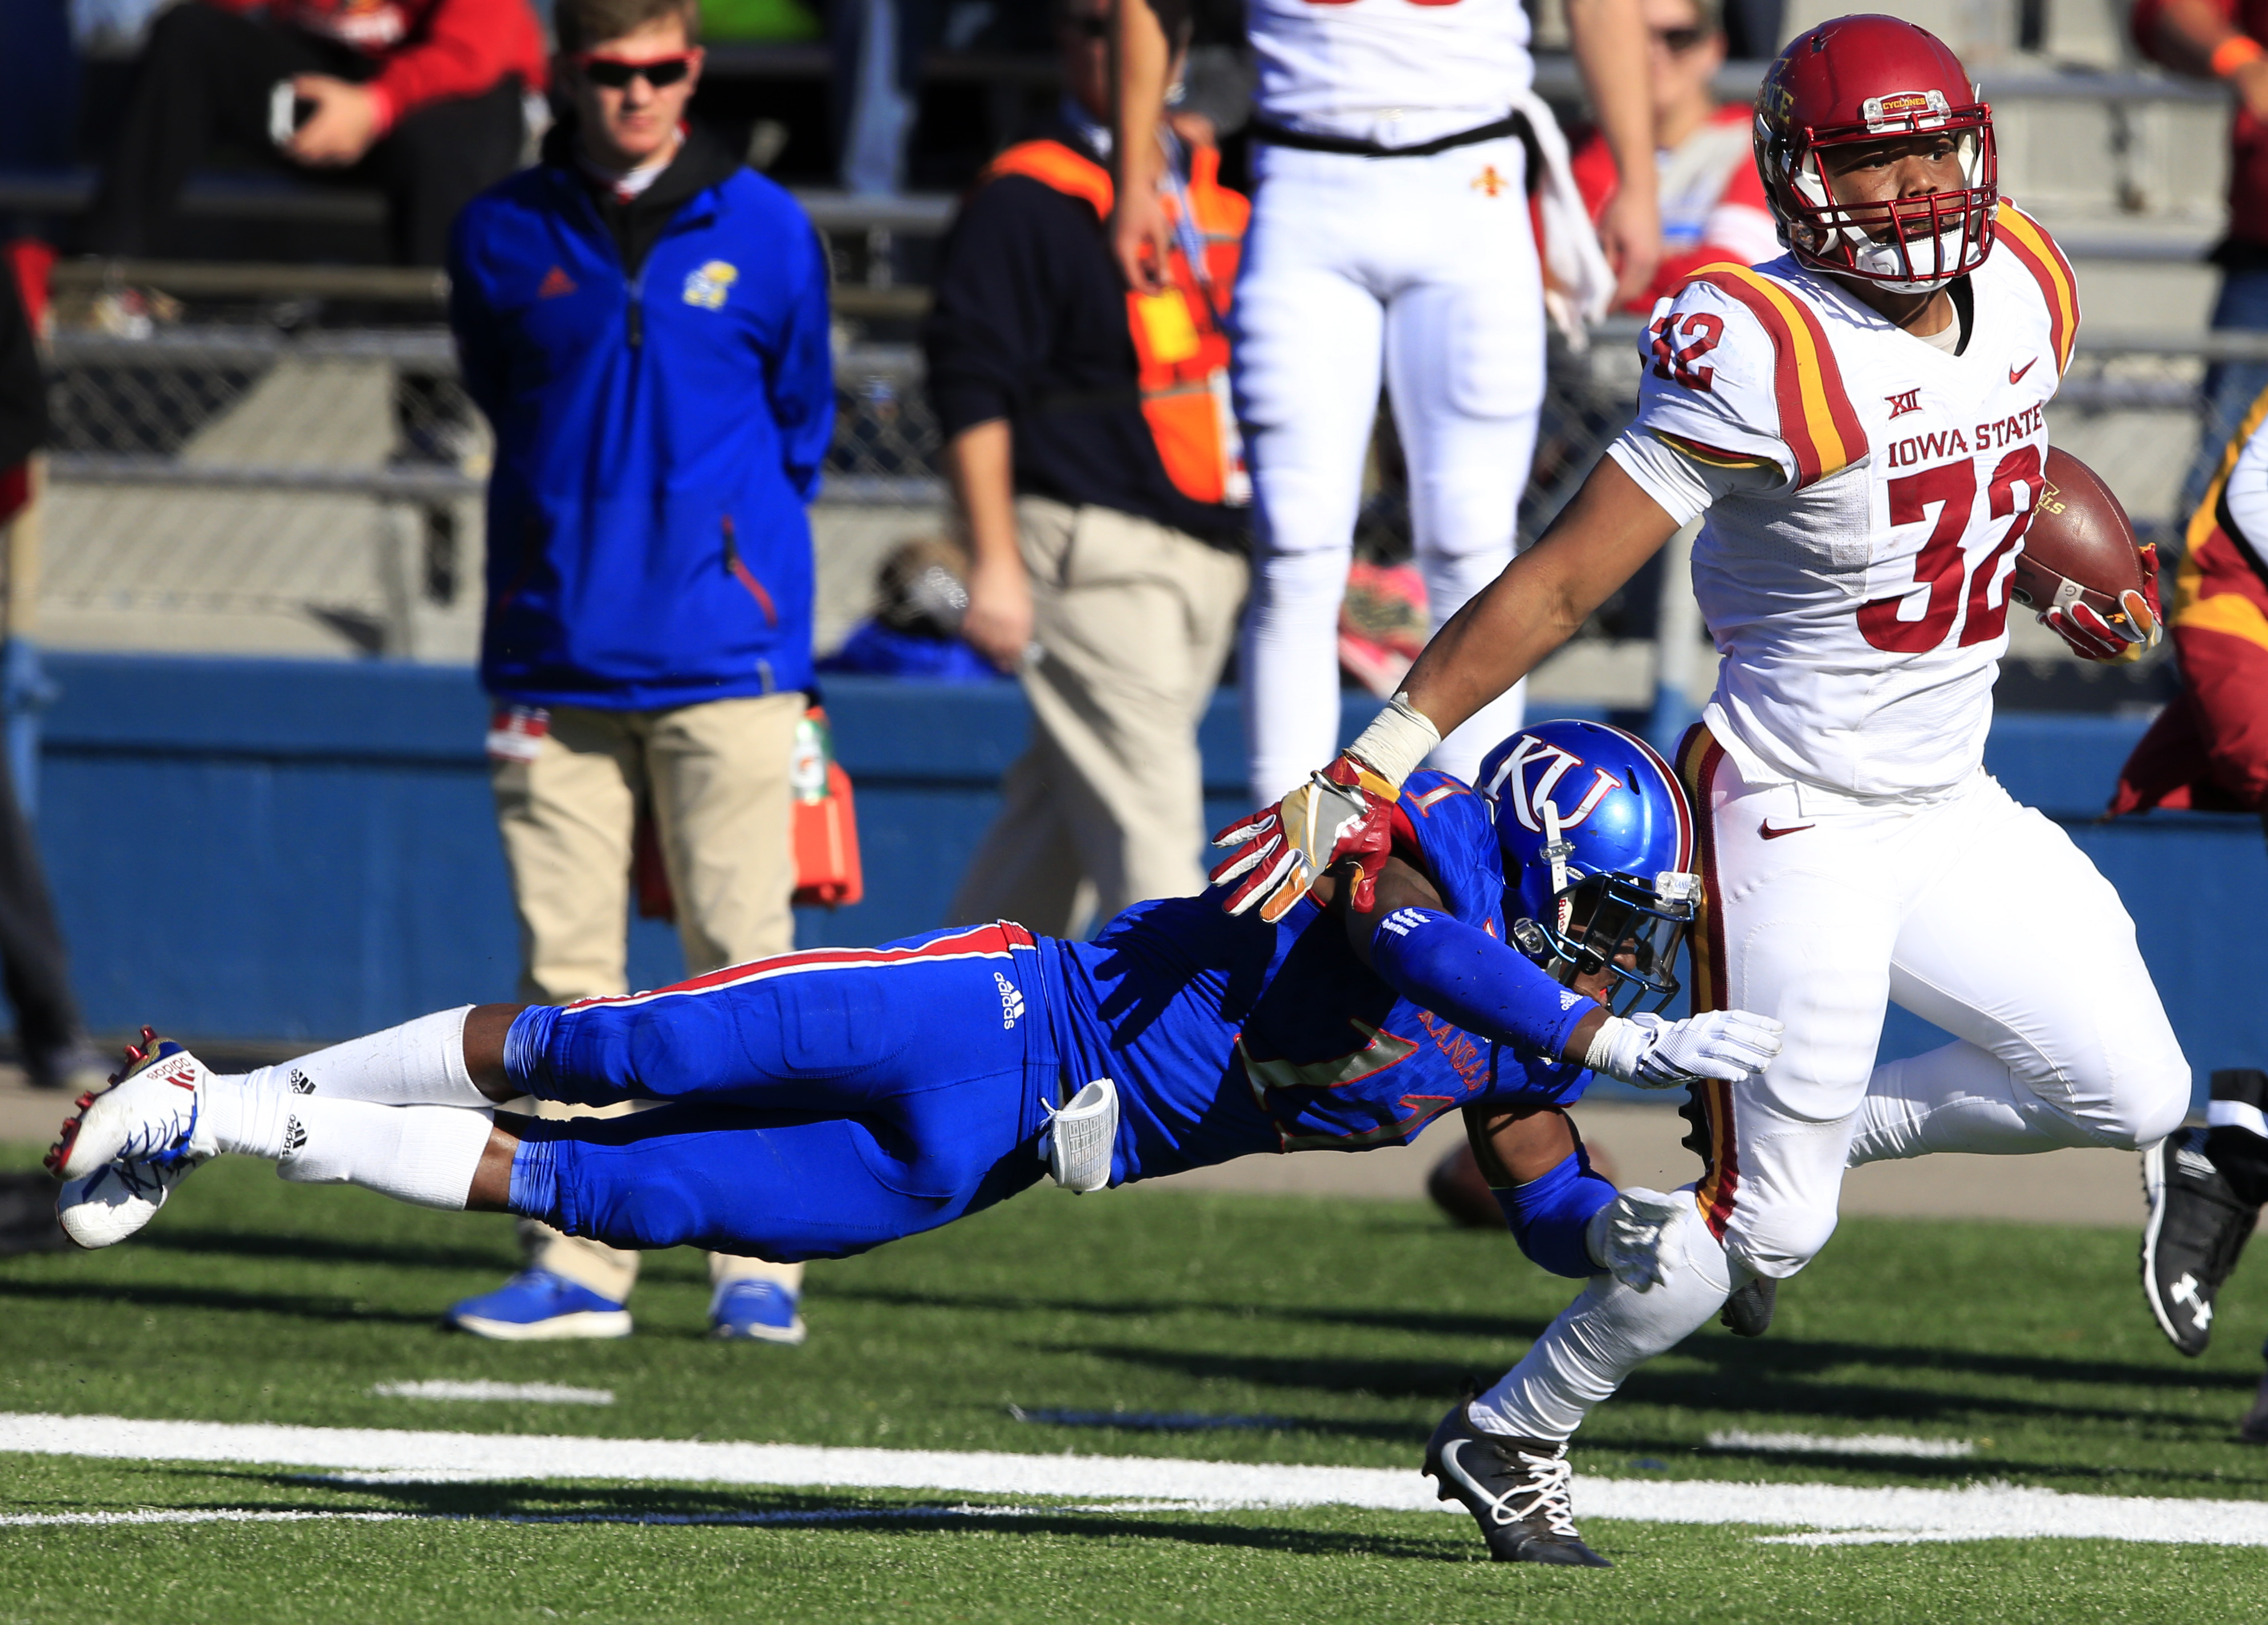 Iowa State running back David Montgomery (32) is tackled after a 46-yard gain by Kansas linebacker Mike Lee (11) during the second half of an NCAA college football game in Lawrence, Kan., Saturday, Nov. 12, 2016. Iowa State defeated Kansas 31-24. (AP Phot